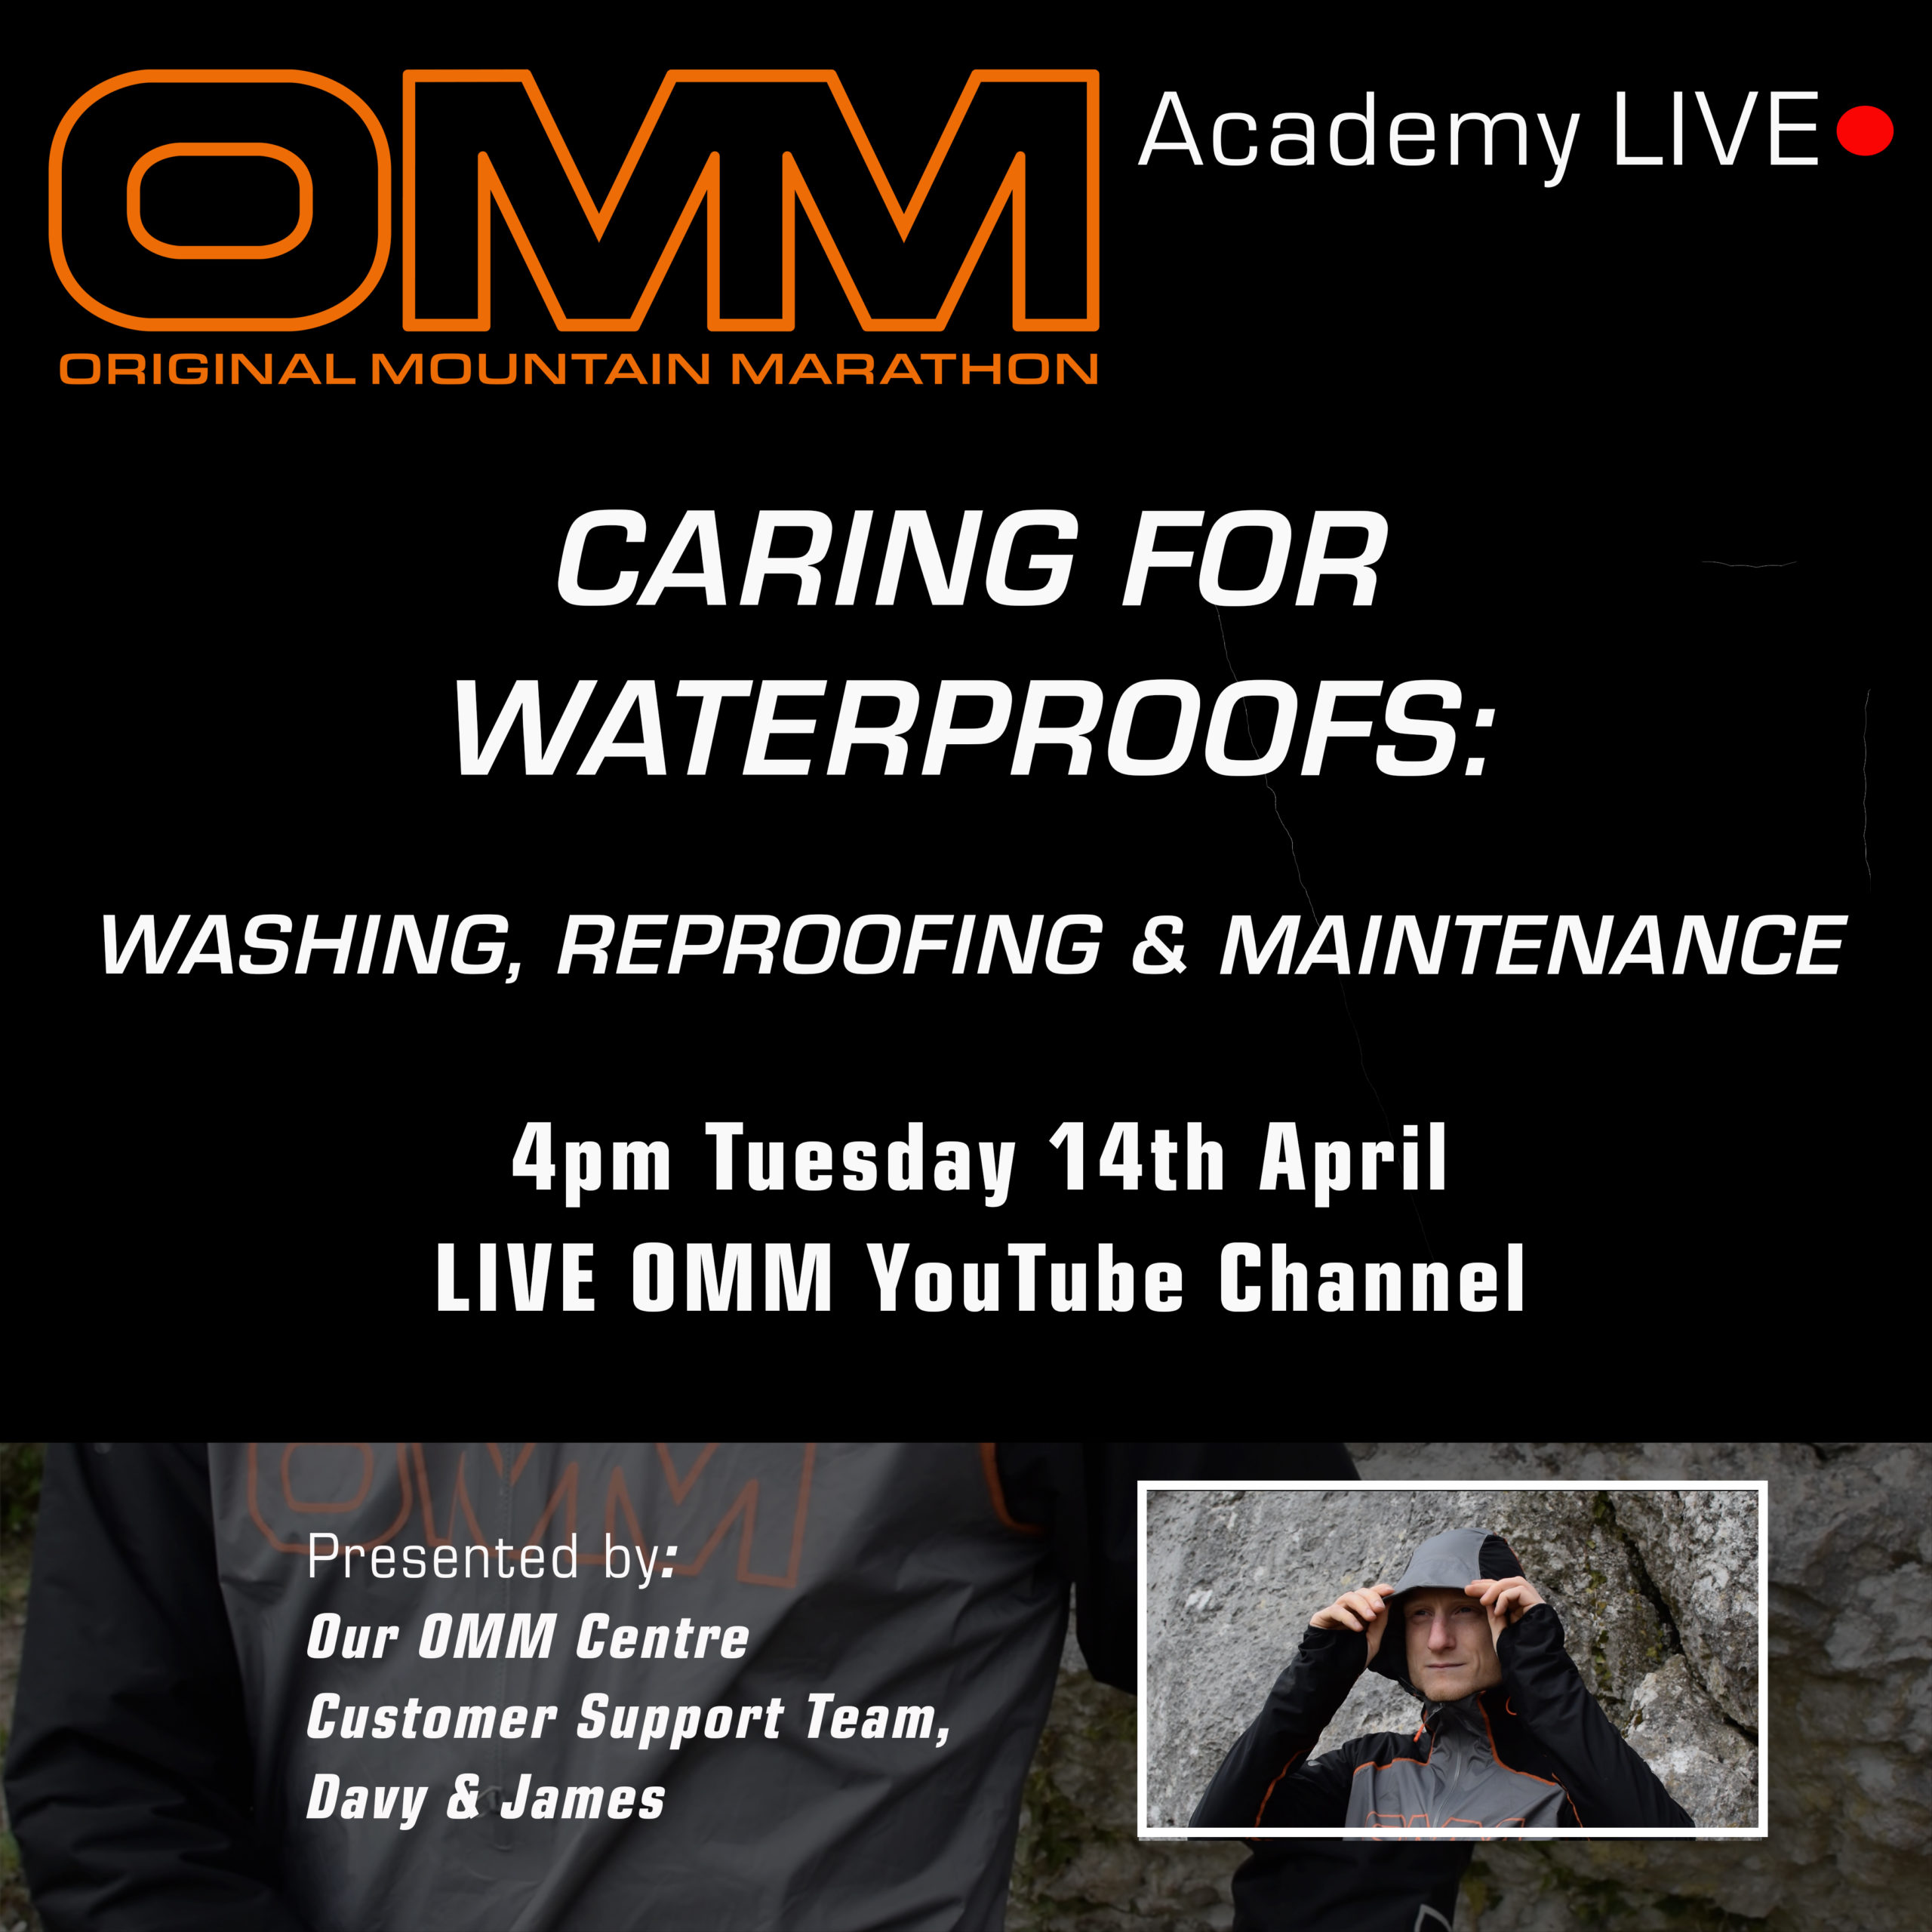 OMM Academy: Waterproof Care & Maintenance